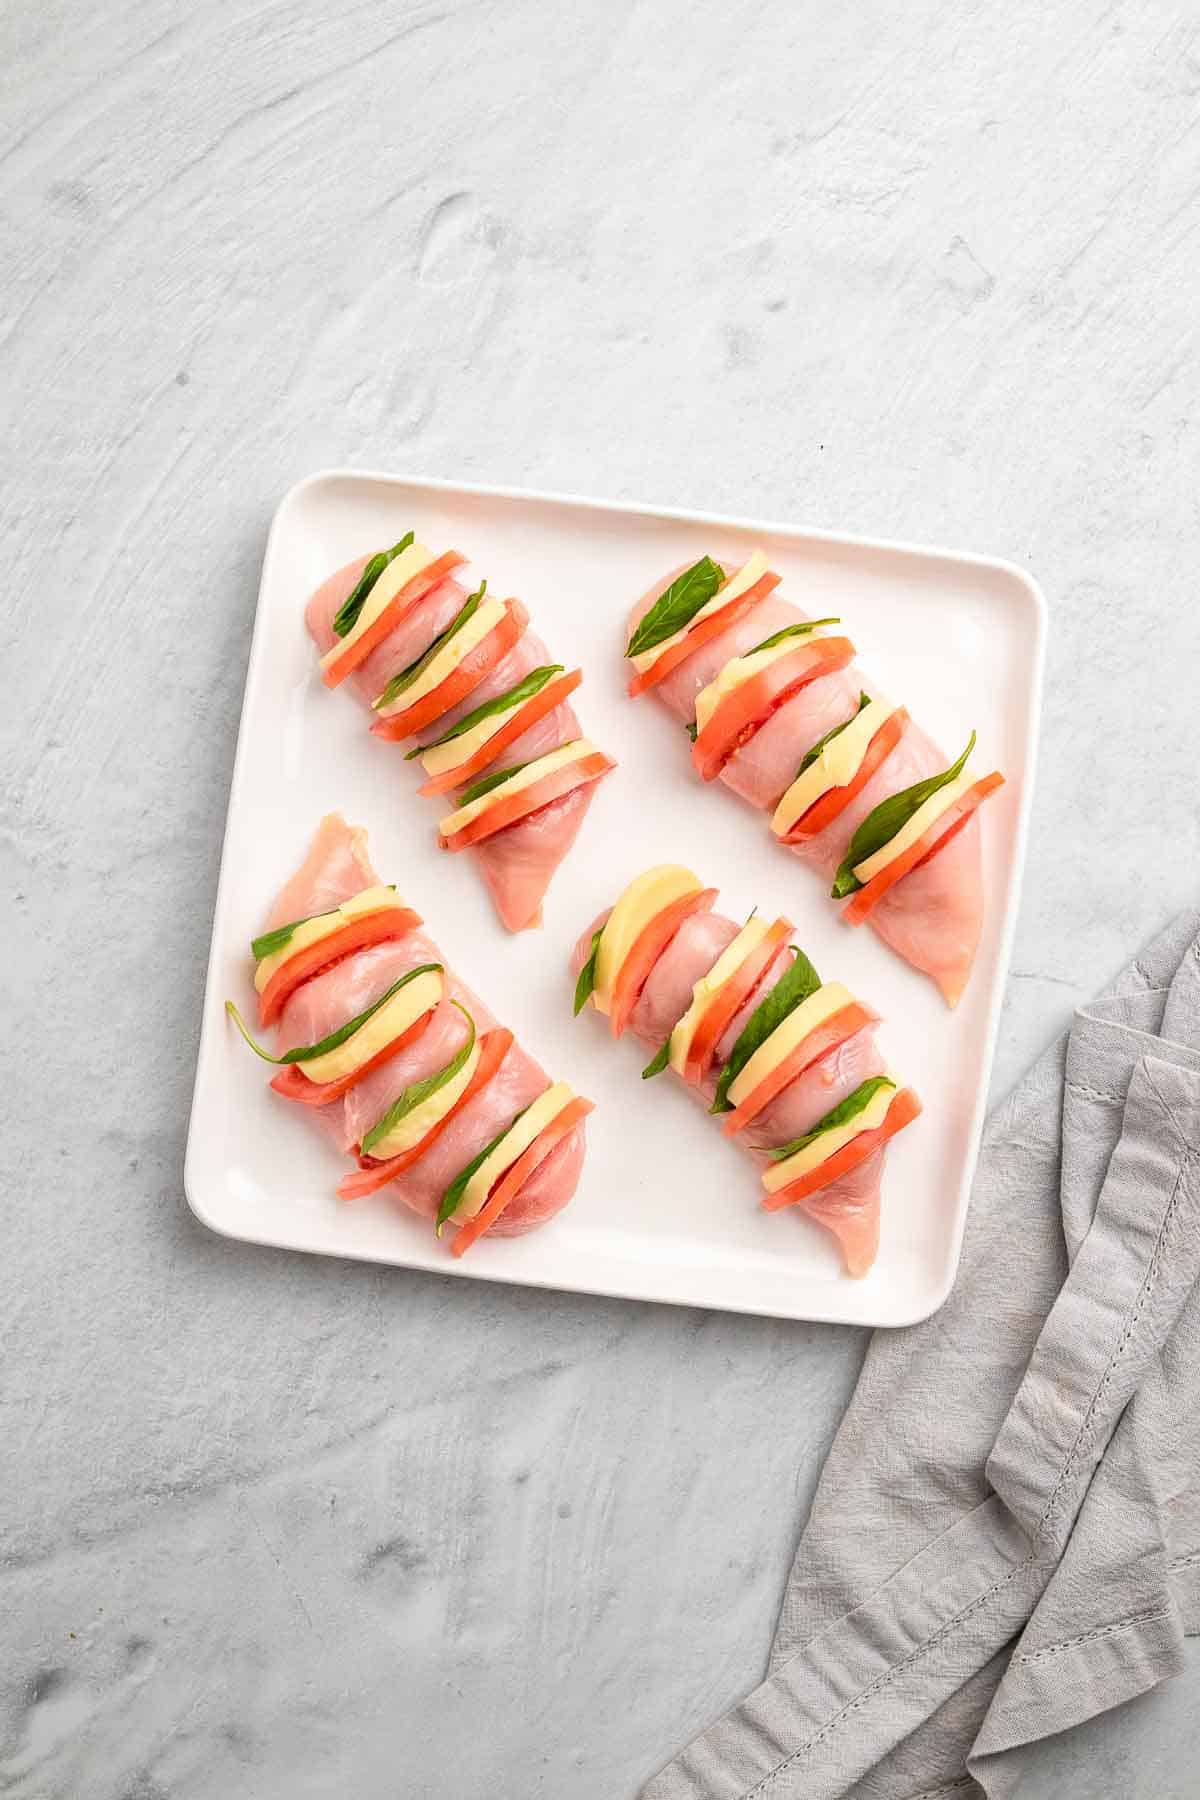 Sliced chicken breasts stuffed with mozzarella, tomato, and basil